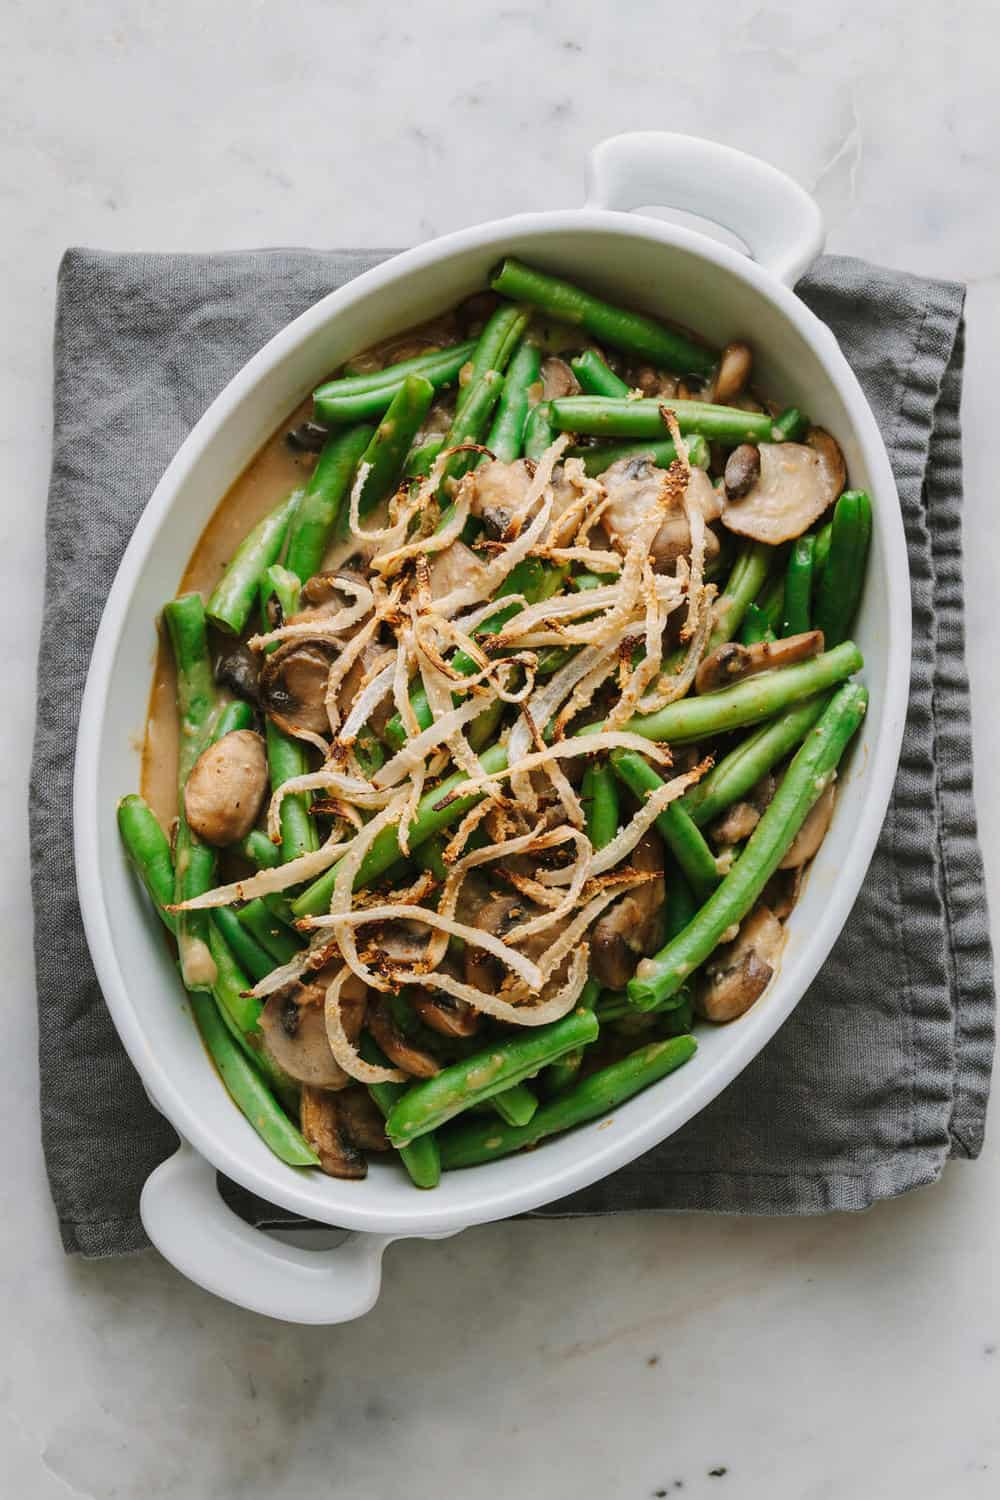 fresh green bean casserole made from scratch in a white serving dish